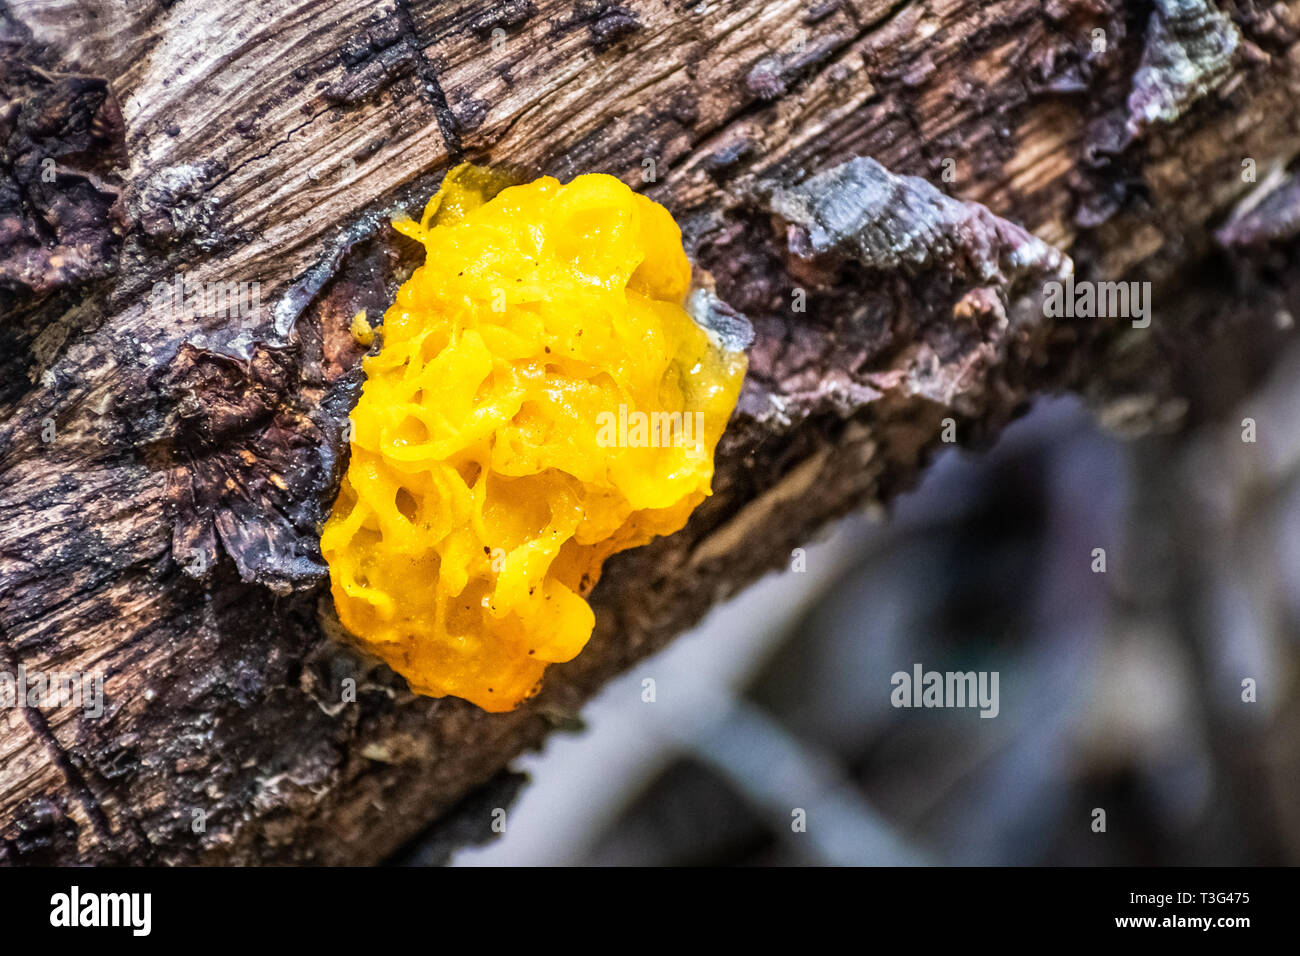 Witches' butter (Tremella mesenterica) growing on a tree trunk in the forests of Marin County, north San Francisco bay area, California - Stock Image